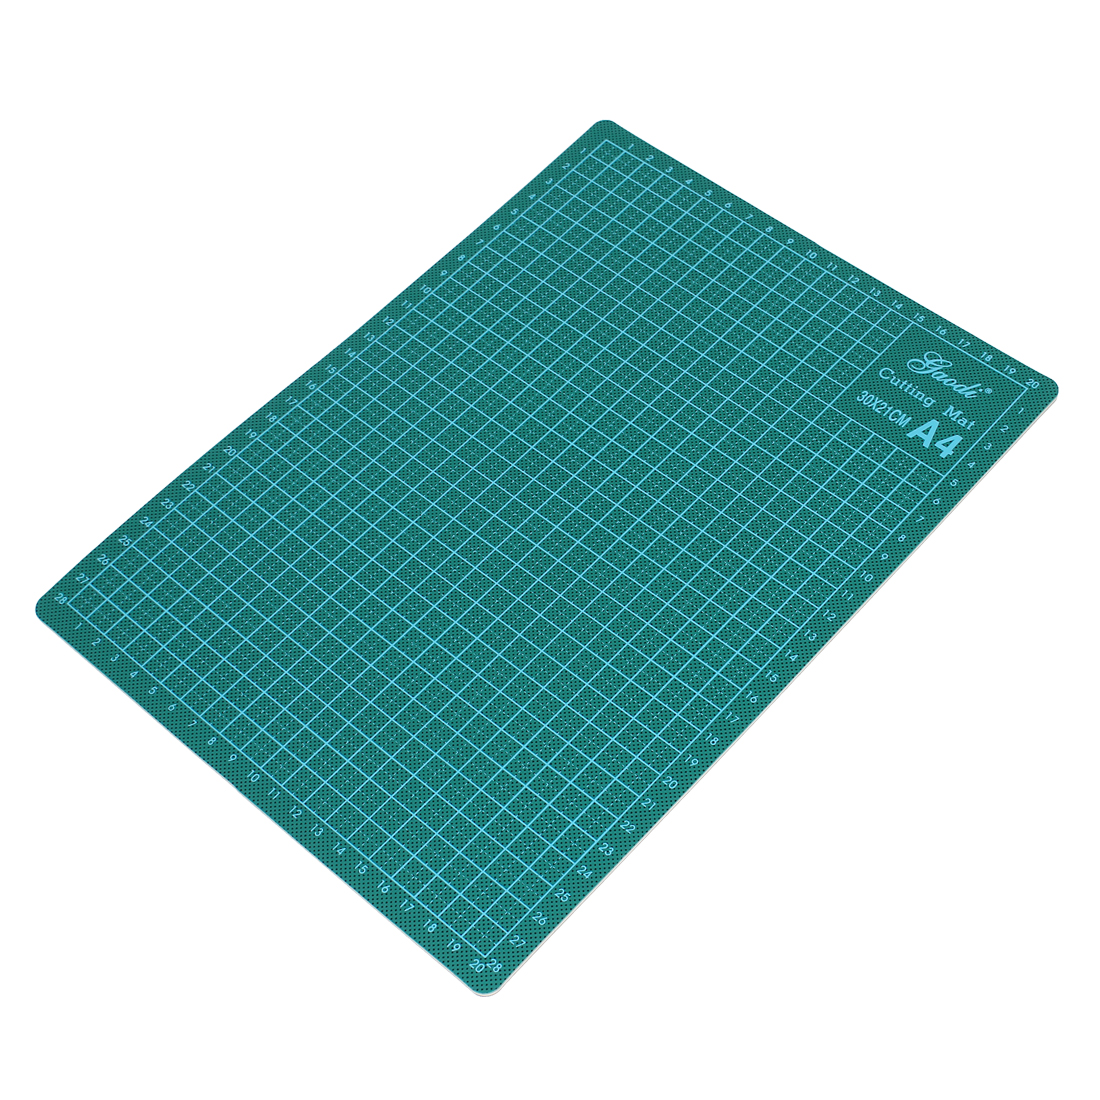 Plastic Cover Nonslip Grid Self Healing A4 Cutting Craft Mat Green 300mm x 220mm